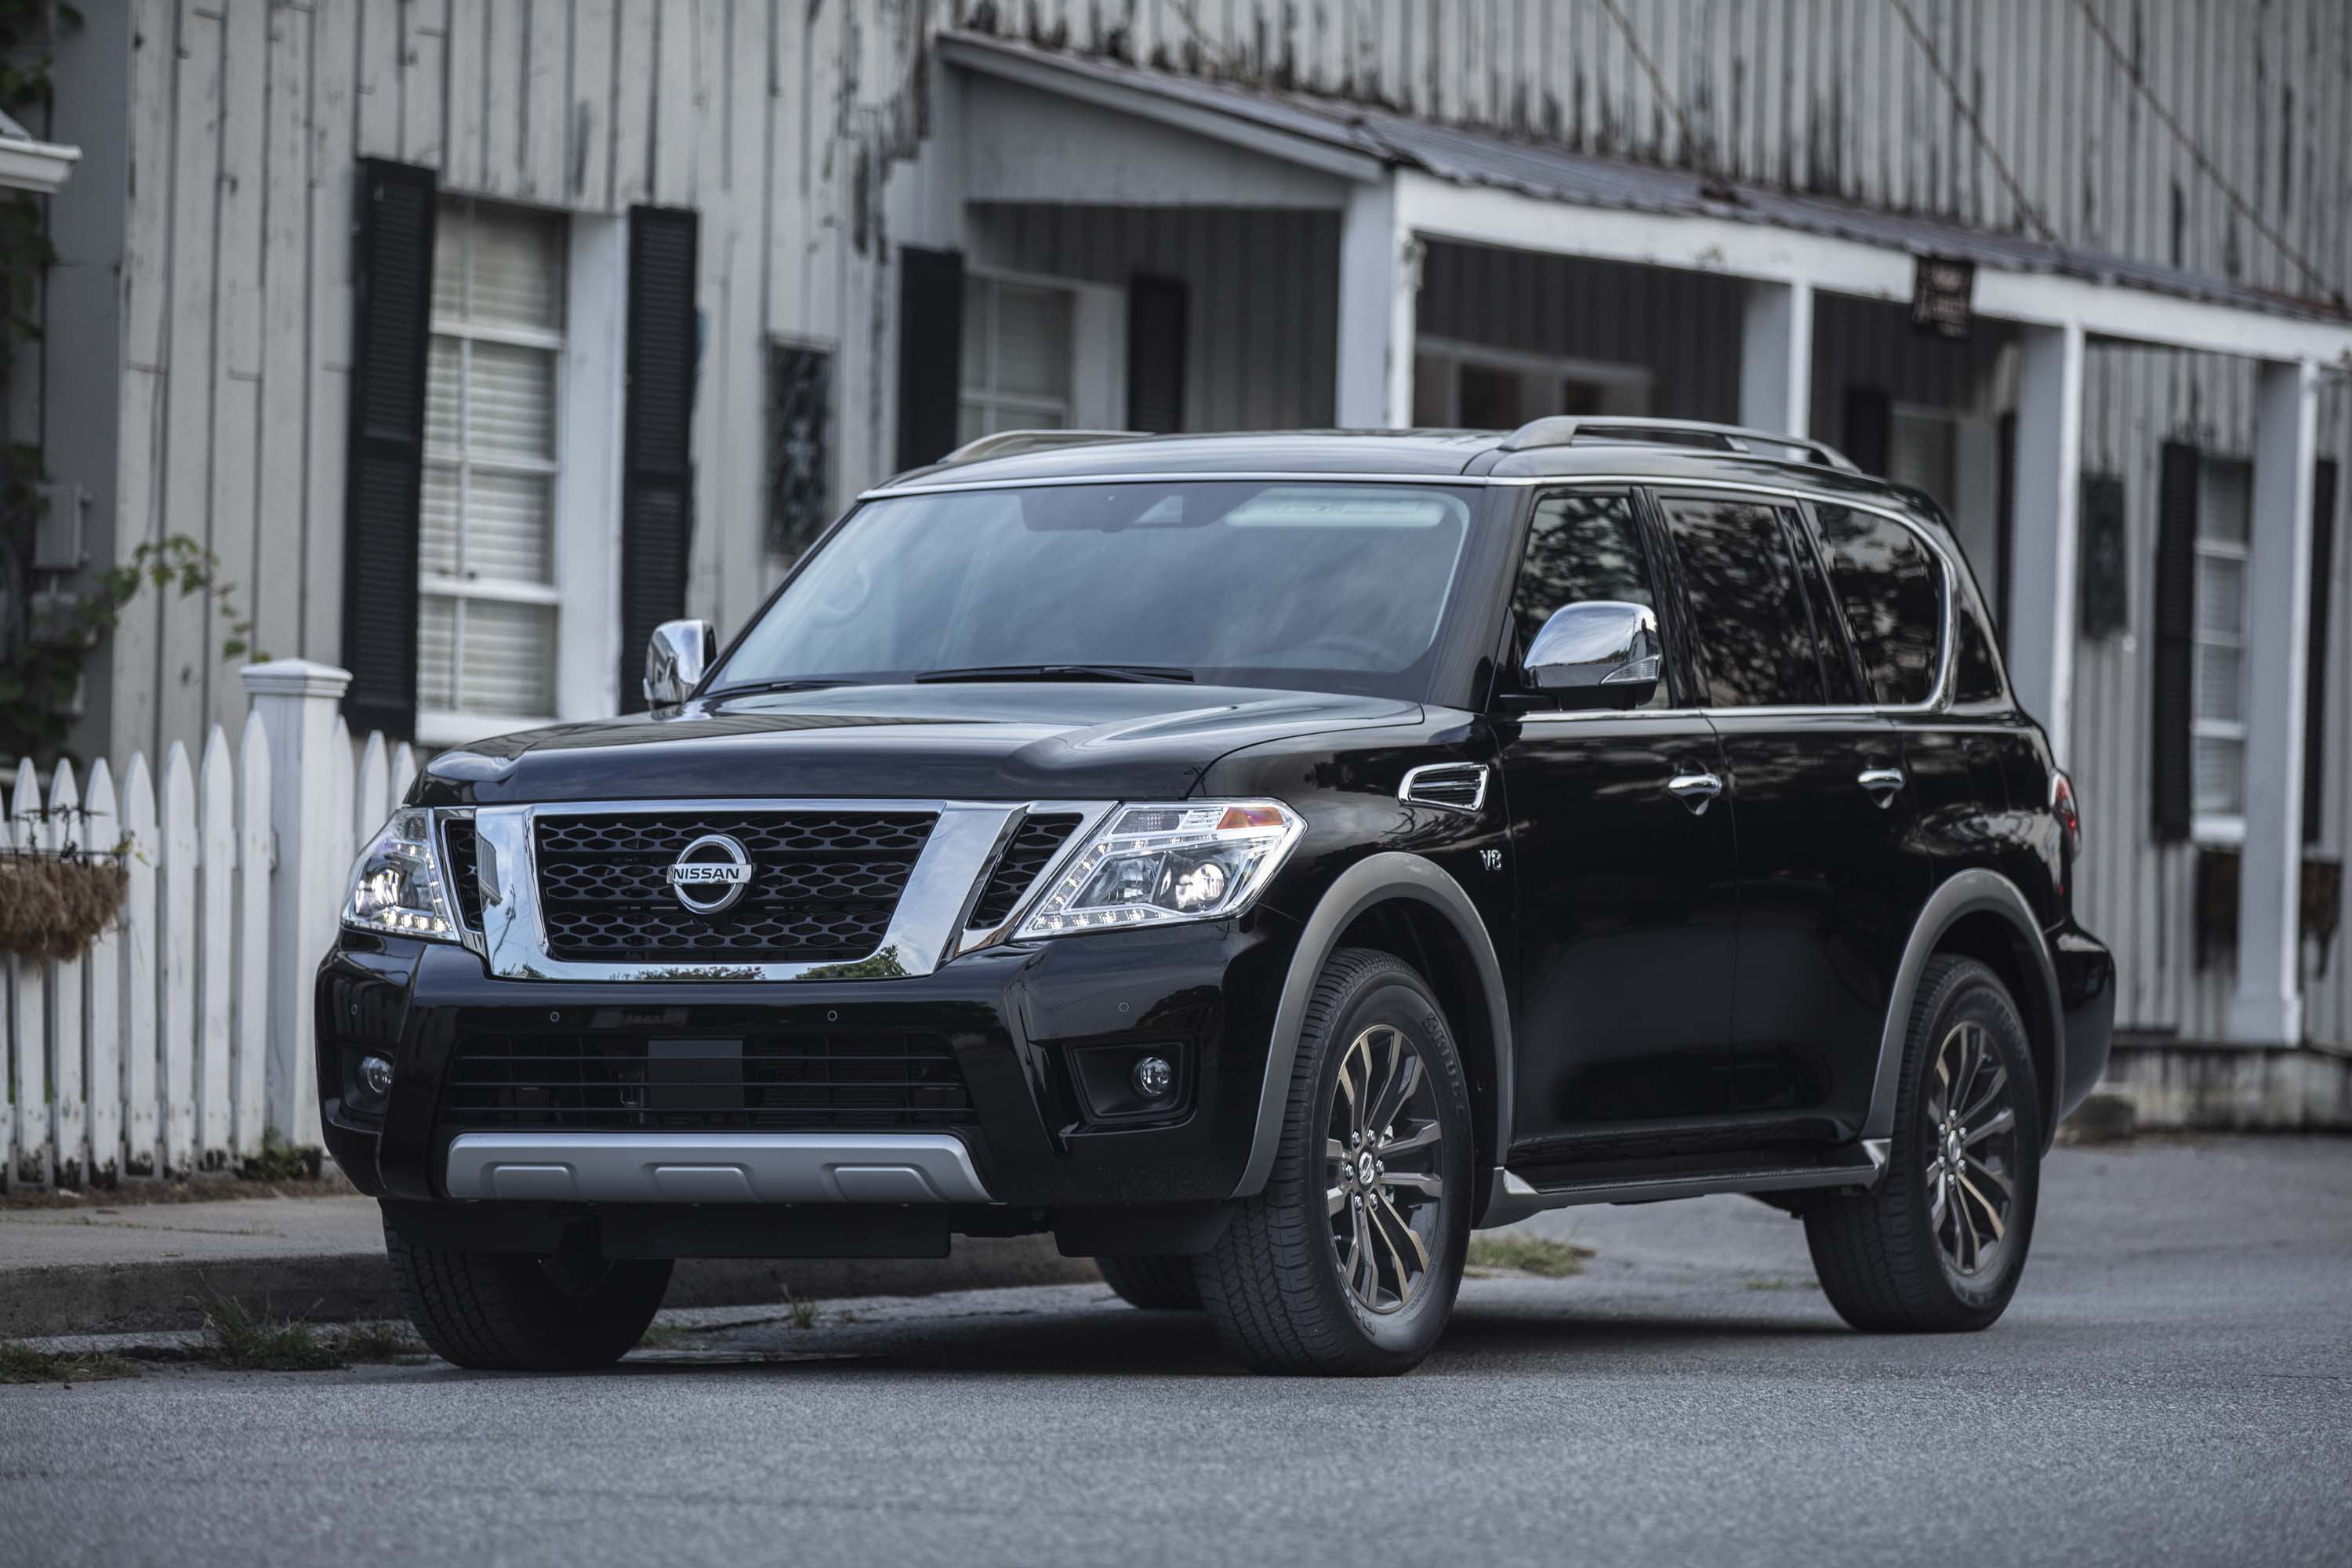 2019 Nissan Armada Suv S Price Climbs To 48 185 Thanks To New Active Safety Tech